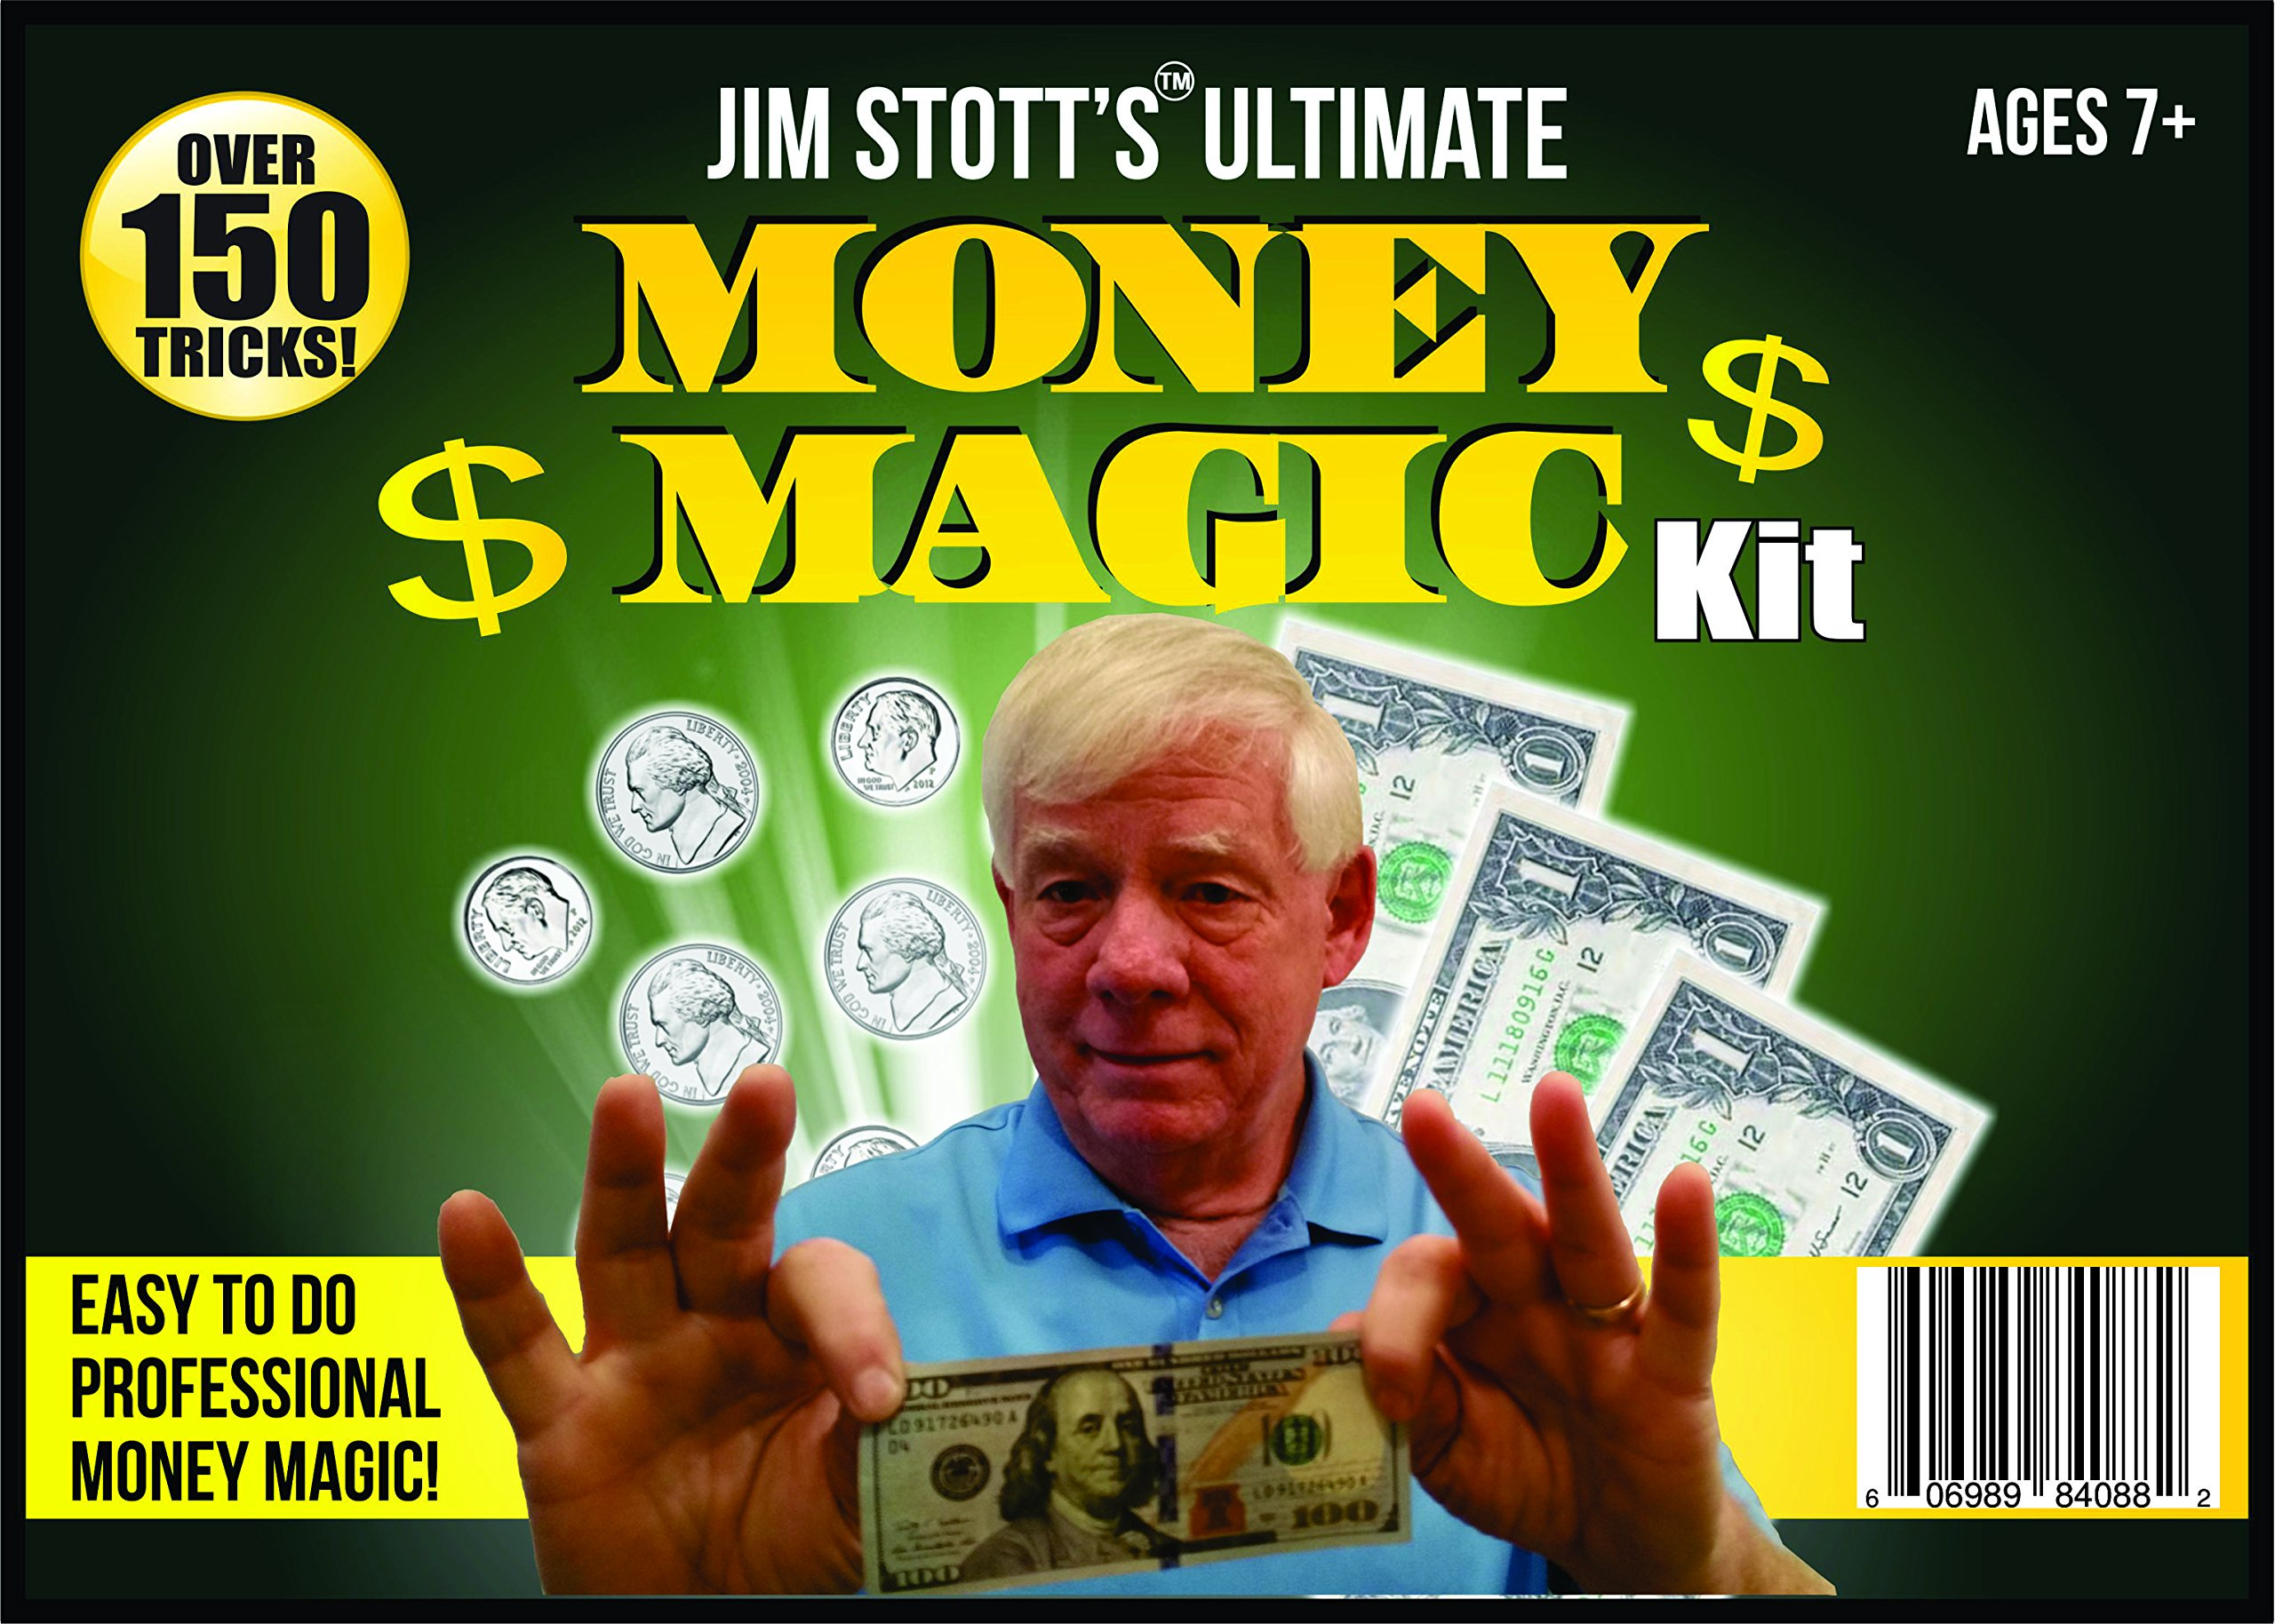 Jim Stott's 'Ultimate Money Magic Kit' Magic Set Featuring Imperial Coins, Nickels to Dimes, Secret Vanishing Device, Magic Money Maker, Coin Thru Glass, Plus Instructional Videos!